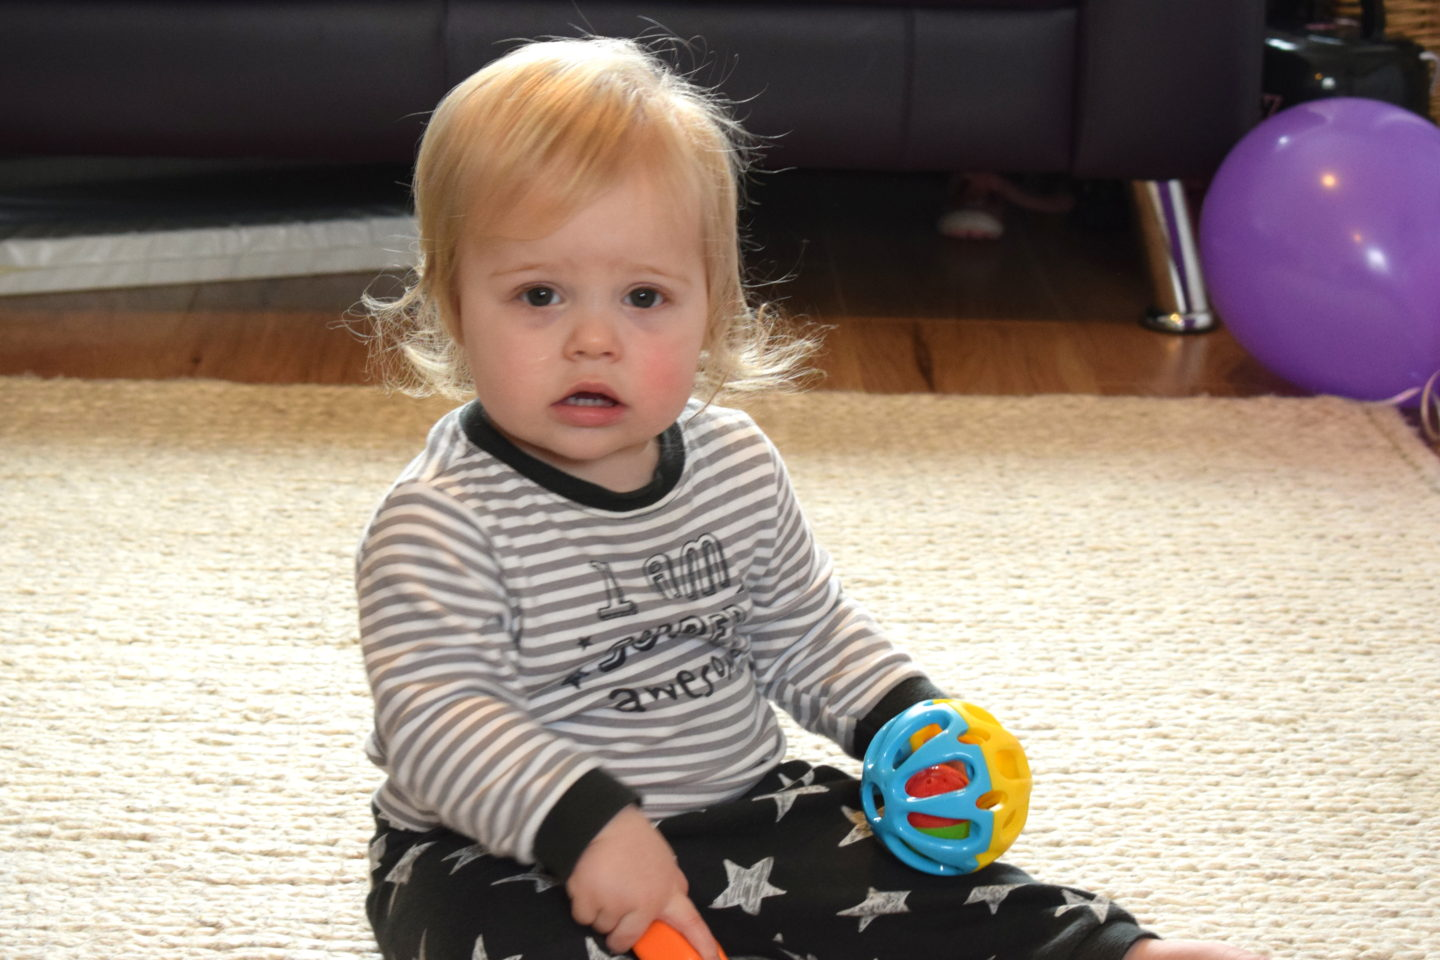 one year old girl in pyjamas, sitting on a rug, holding a ball